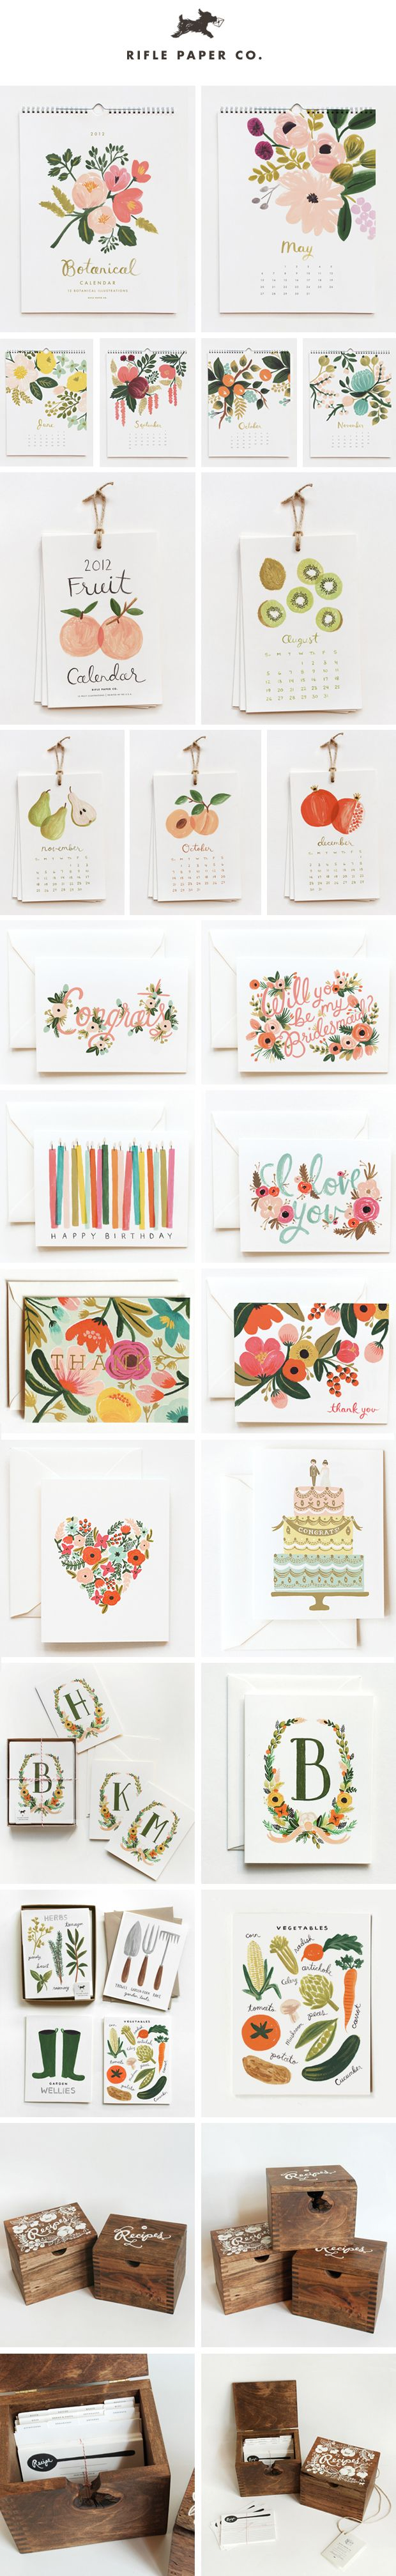 Love this stationery range!! So beautiful, well designed, lovely imagery, simplistic, colourful, unique!